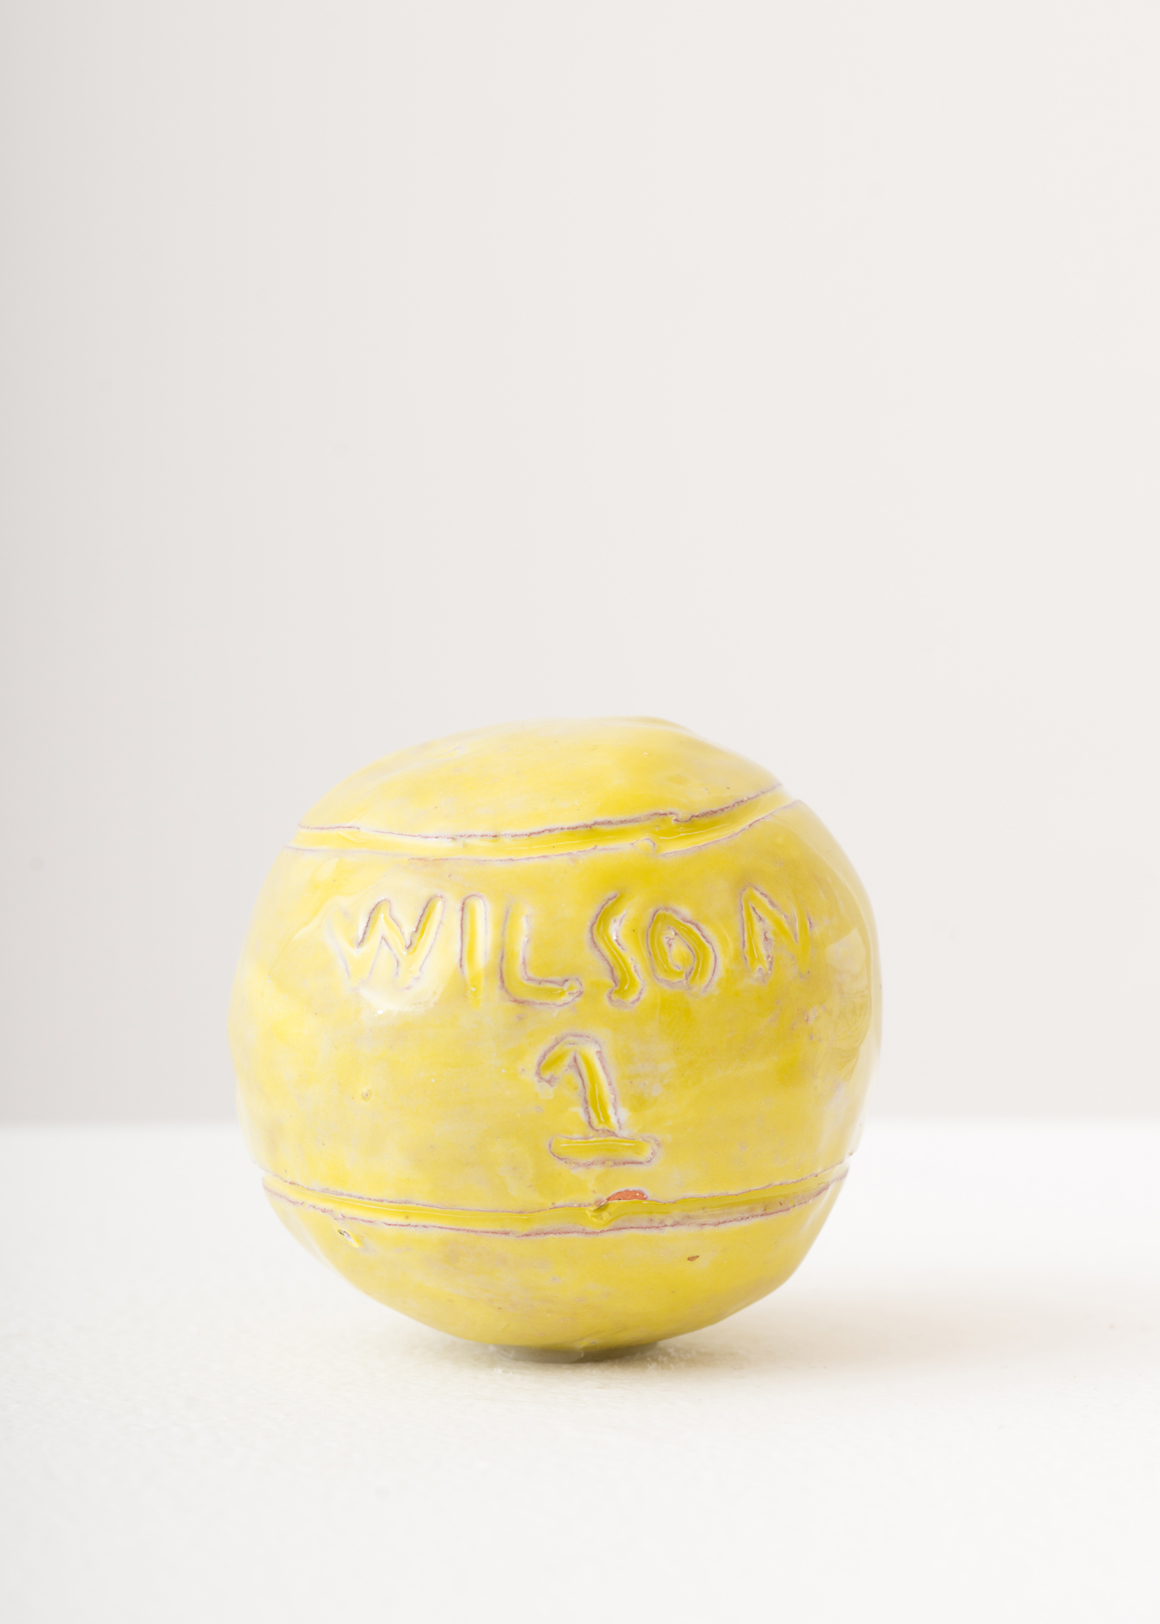 "<p><span class=""name"">Stephanie Kantor</span><br><em>Balls</em><span class='media'>Earthenware, Glaze</span>2.75 x 2.75 in (7 x 7 cm)<br>Edition of Edition 20 of 20<br>2018<br><a class='inquire' href='mailto:info@gildargallery.com?subject=Artwork Inquiry SKAN0041&body=I am interested in finding out more about Balls by Stephanie Kantor'>Inquire</a></p>"